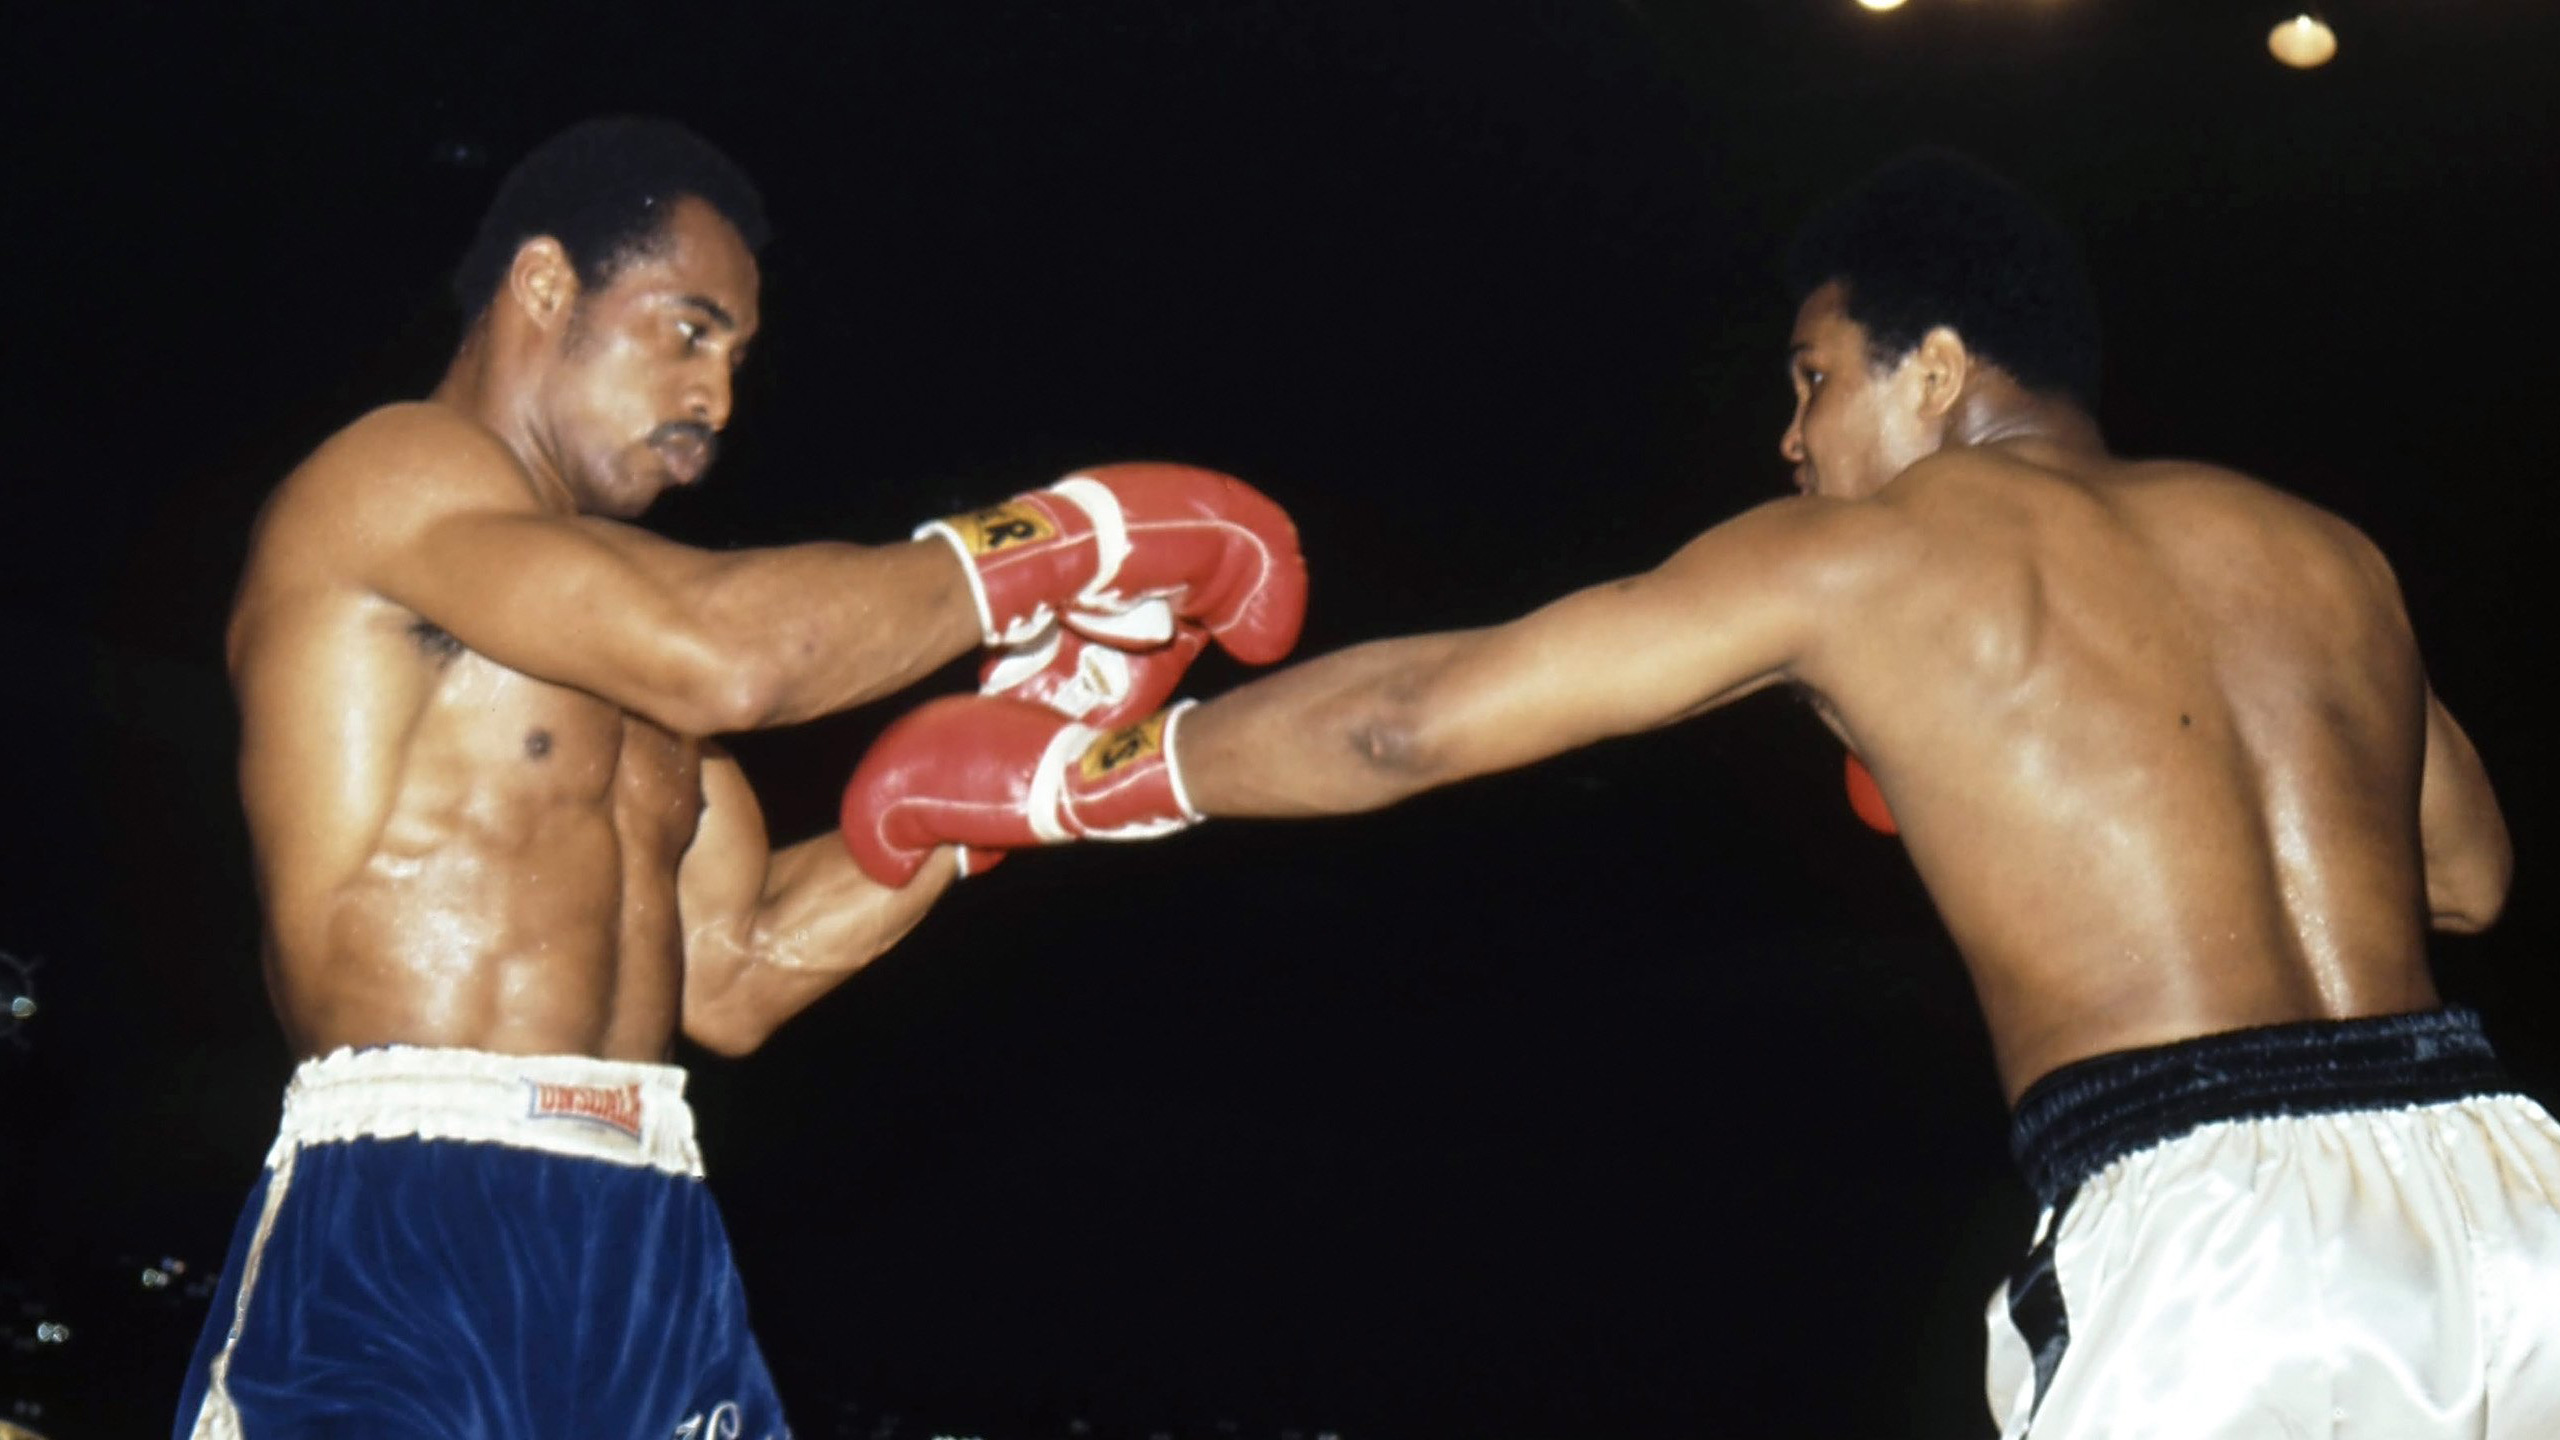 Muhammad Ali 1 vs. Ken Norton 1 (re-air)